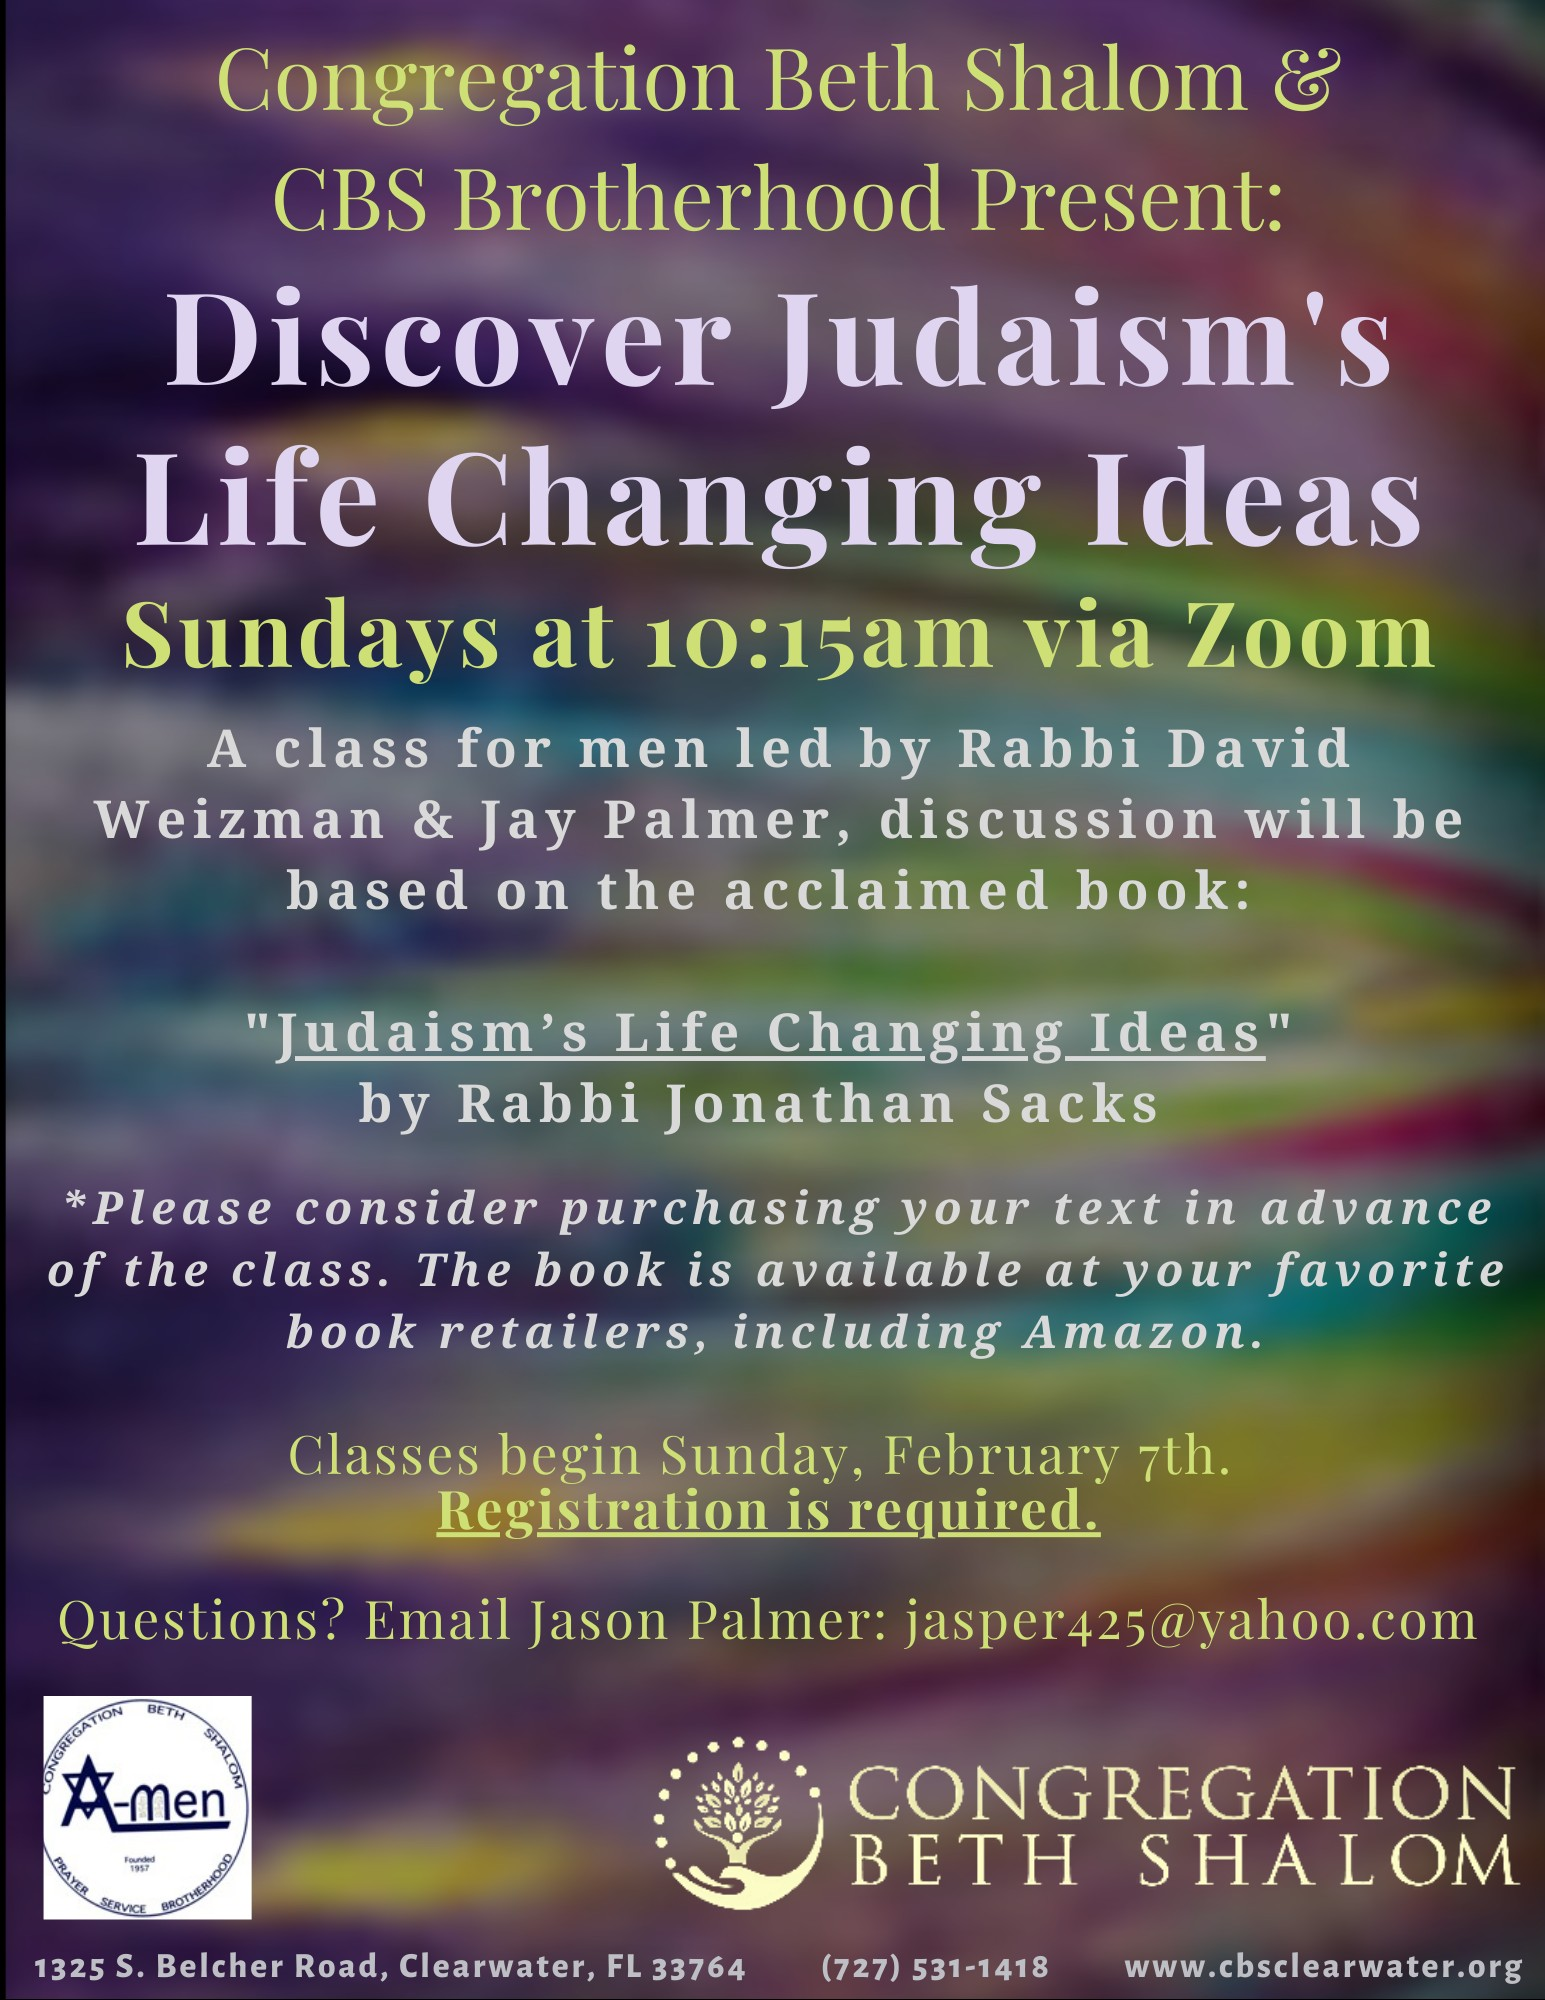 """<a href=""""https://www.cbsclearwater.org/form/Discover%20Judaism's%20Life%20Changing%20Ideas""""                                     target=""""_blank"""">                                                                 <span class=""""slider_title"""">                                     A Class for Men                                </span>                                                                 </a>                                                                                                                                                                                       <span class=""""slider_description"""">Join Rabbi David Weizman & Jay Palmer for weekly discussions based on the acclaimed book. Register now!</span>"""